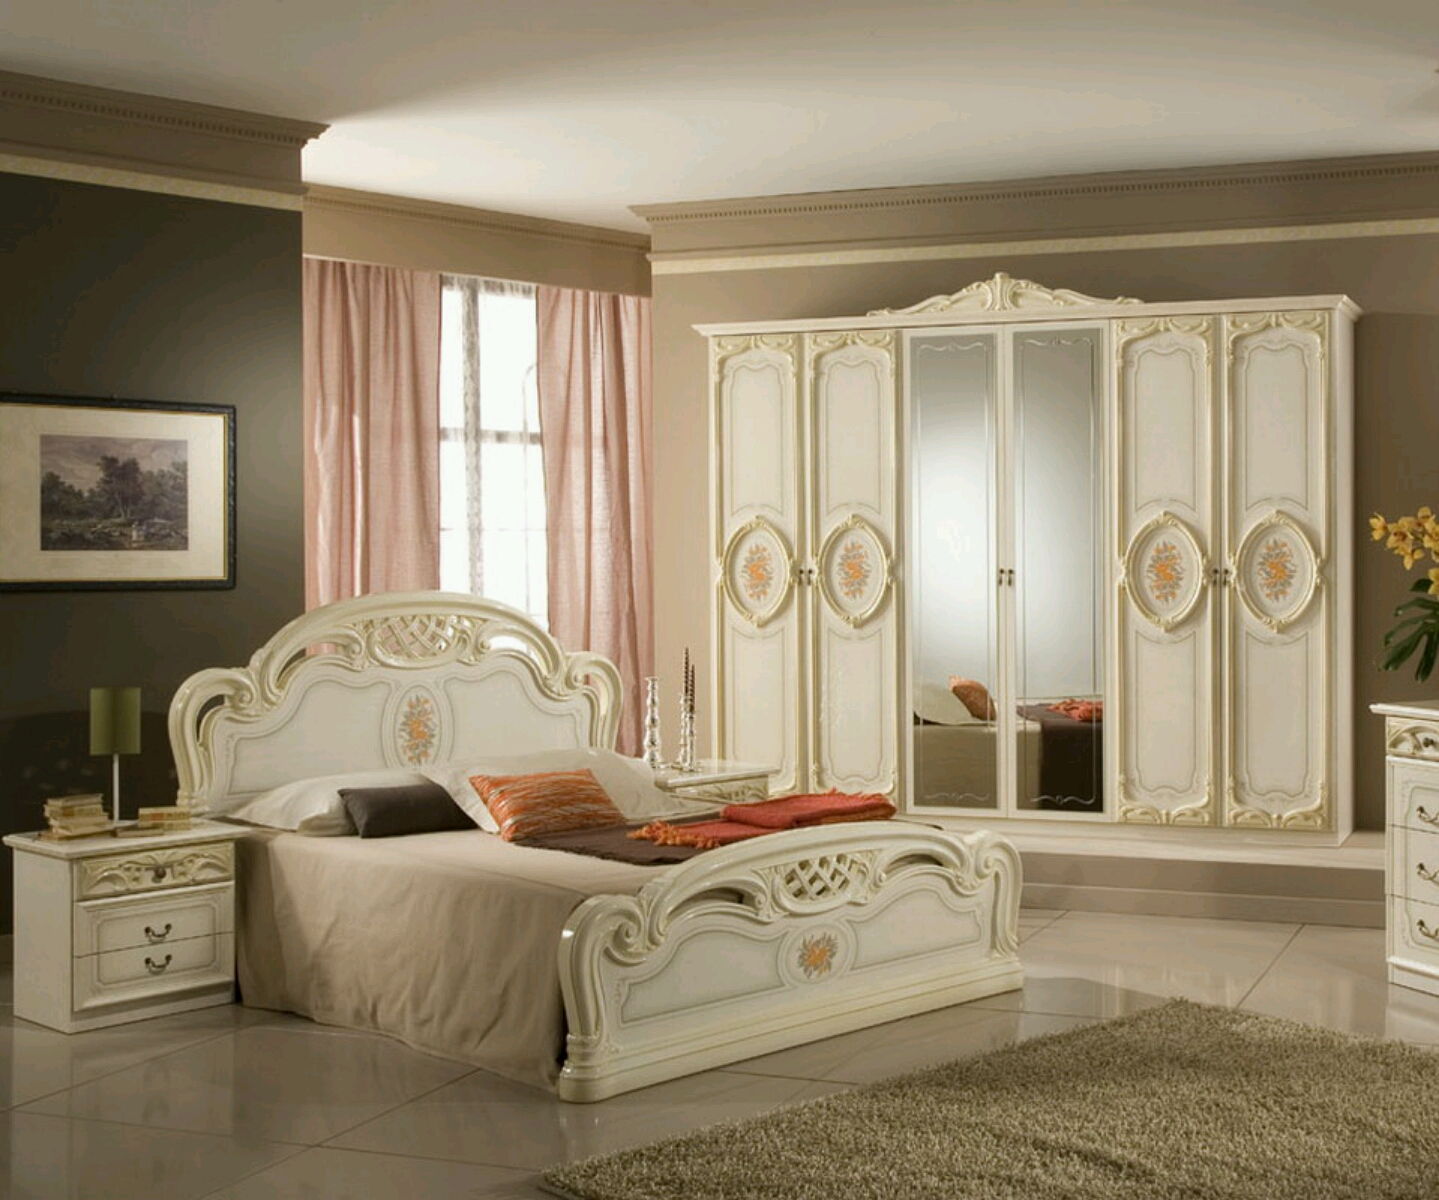 Modern luxury bedroom furniture designs ideas vintage romantic home - Bedroom designers ...